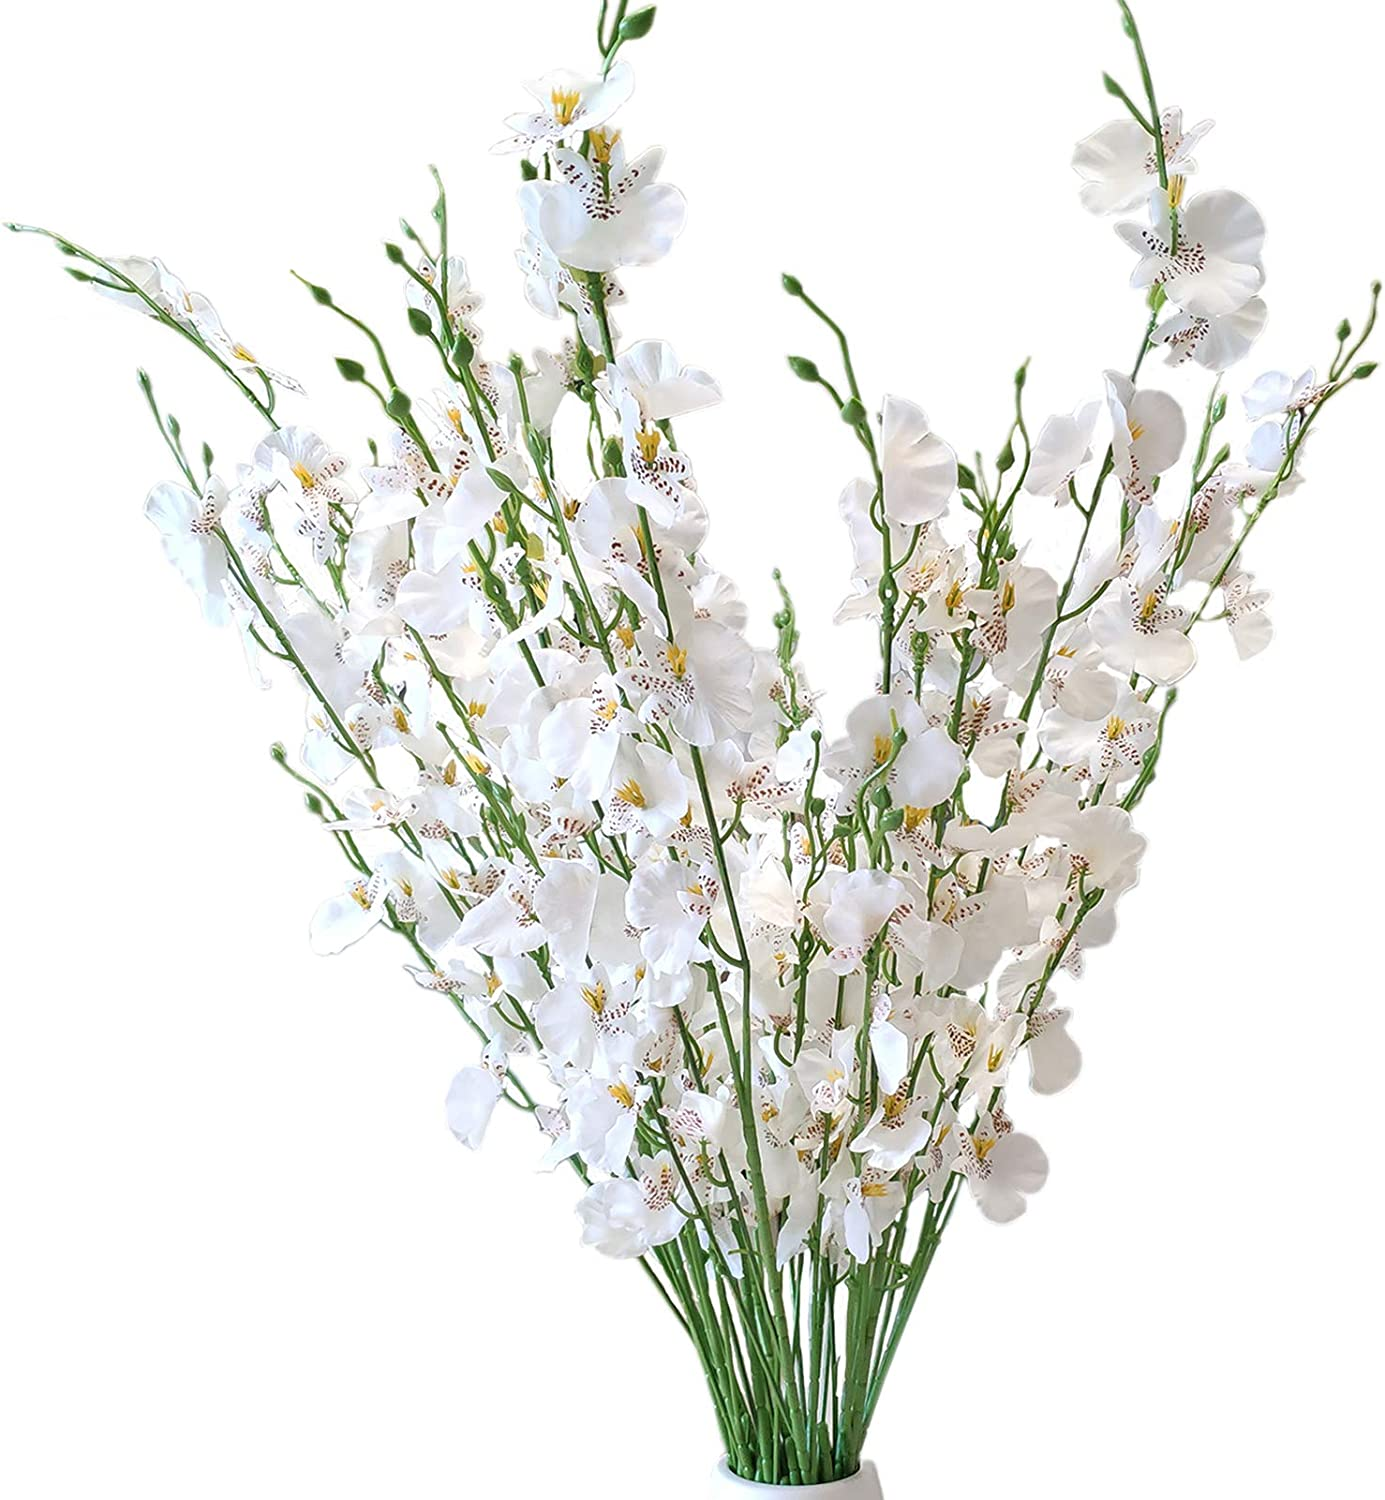 Artificial Orchid Fake Flower Arrangement, Faux Orchid, Tall Silk Flowers White with Long Stems 37